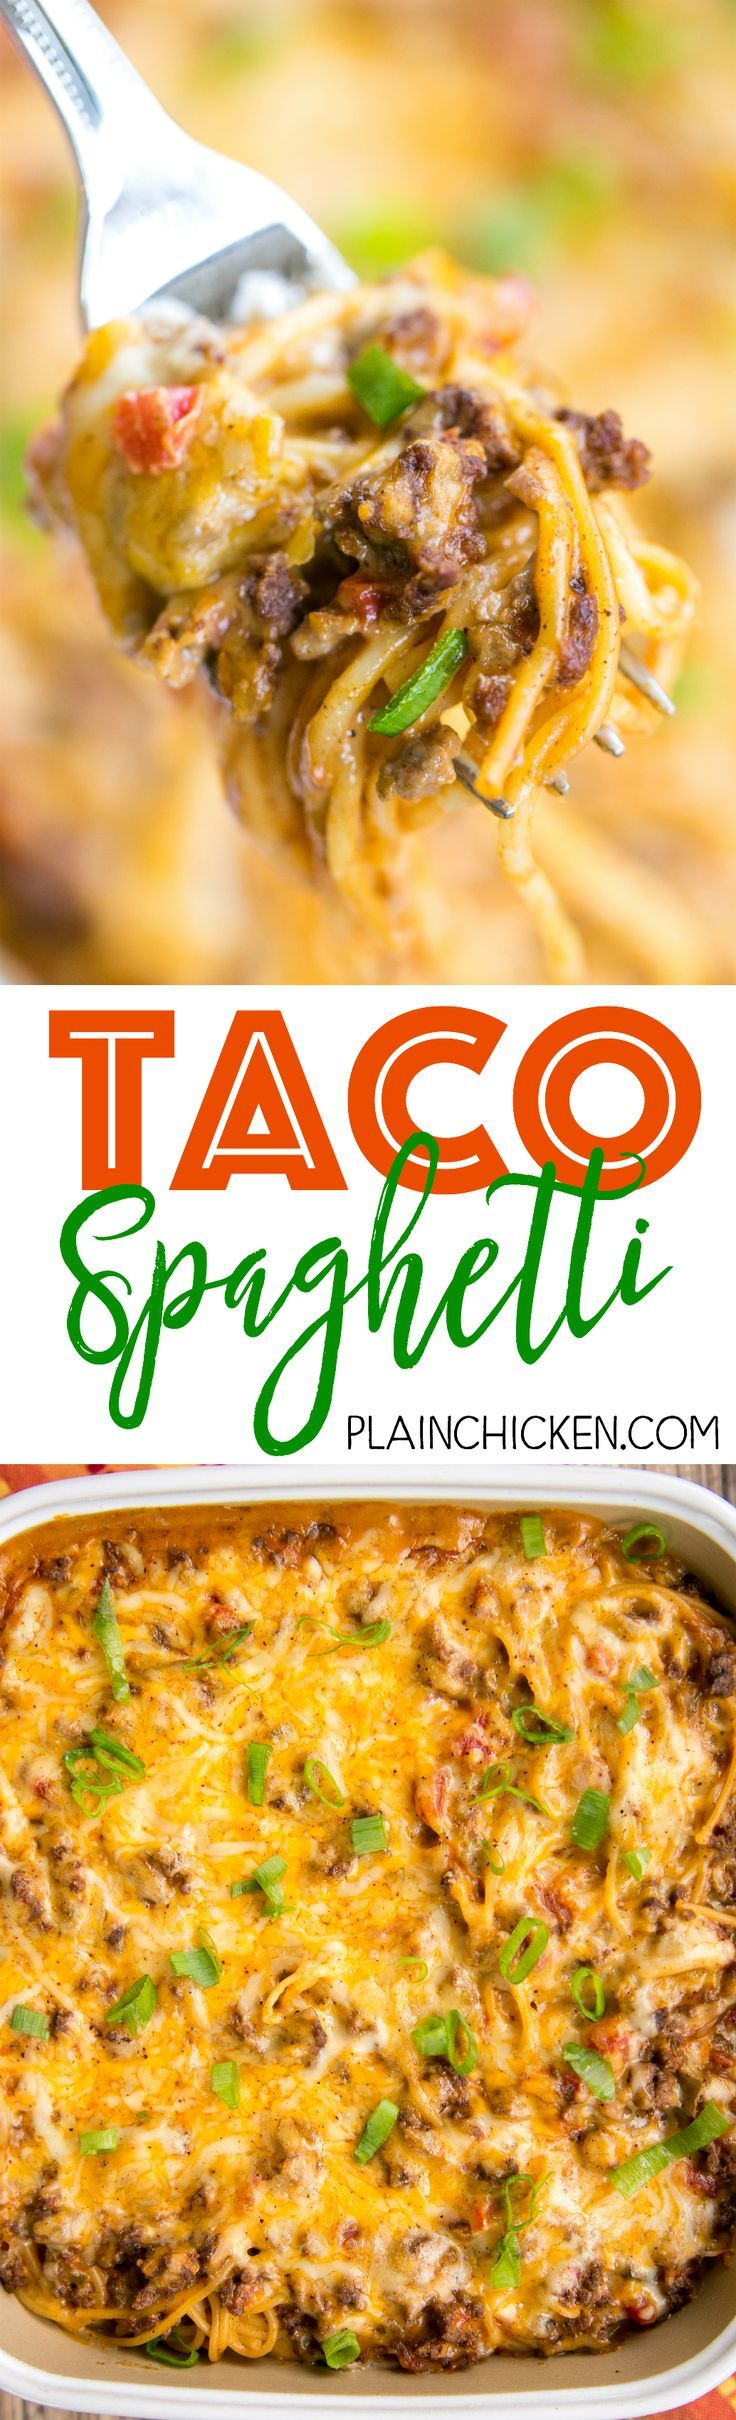 awesome Taco Spaghetti - THE BEST! We ate this three days in a row! Ready in 30 minutes!...